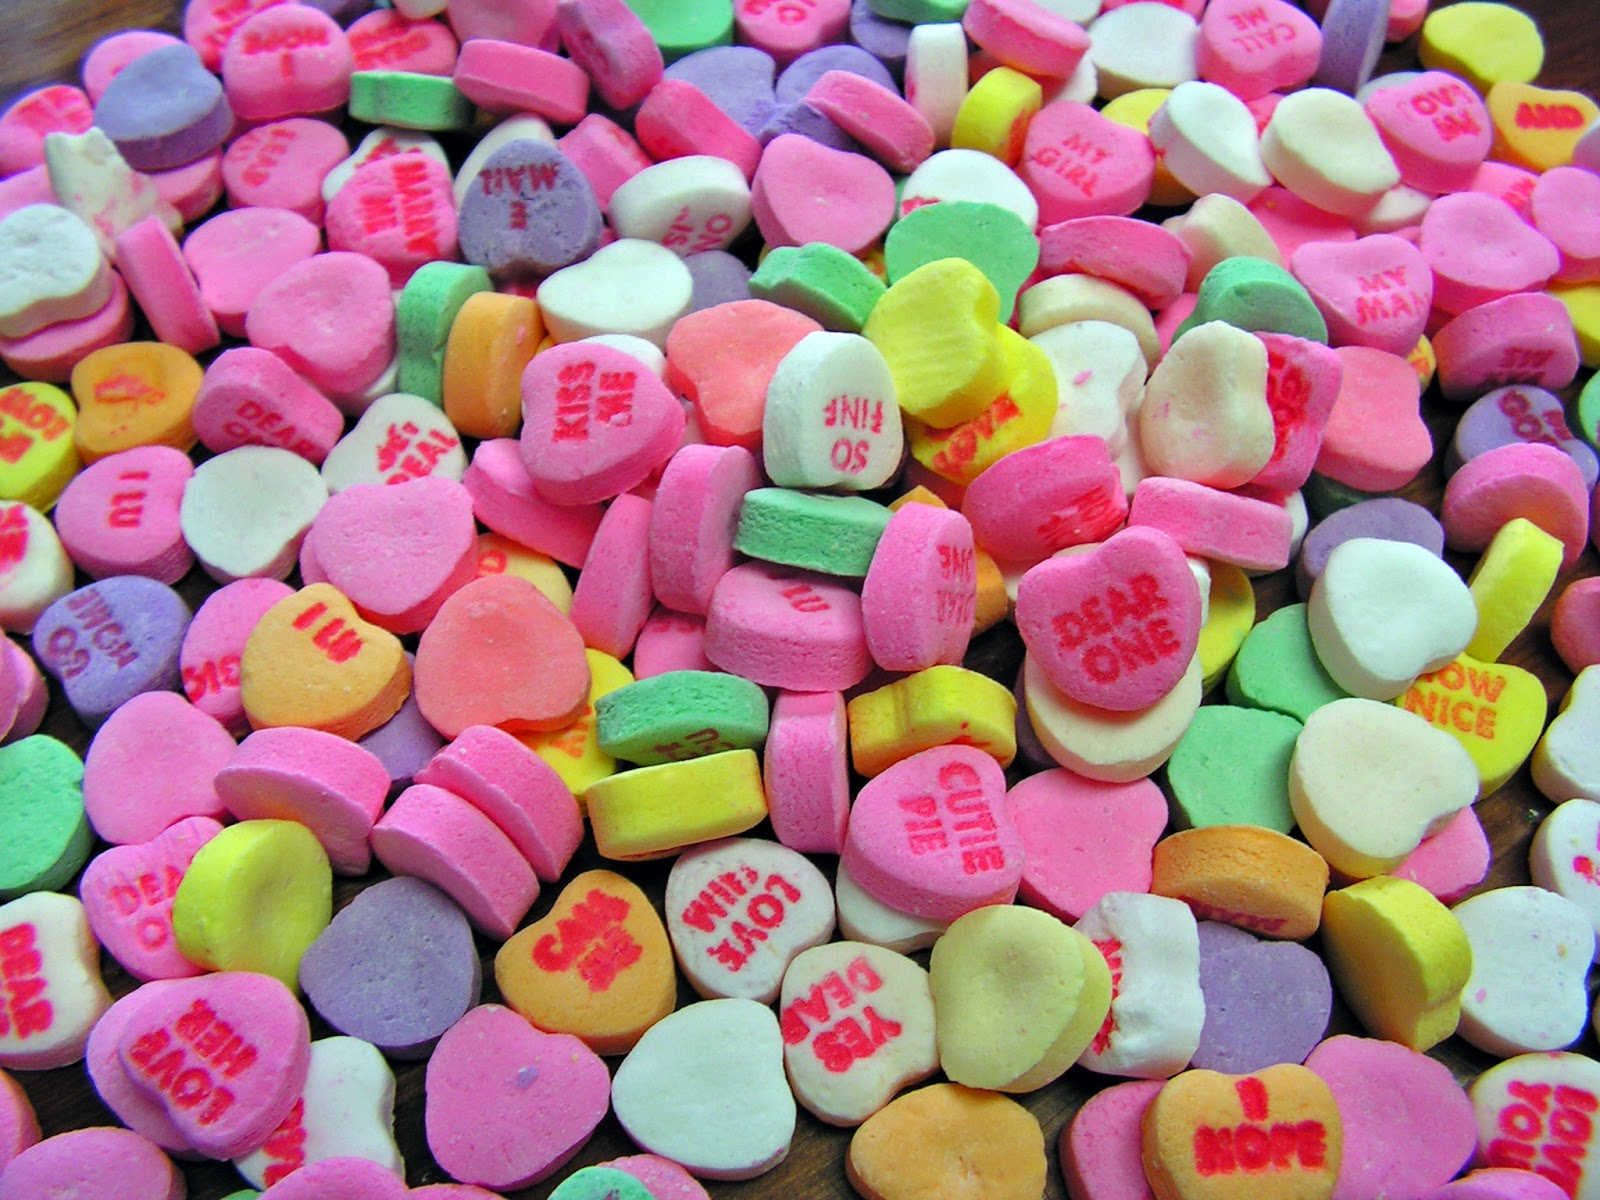 Candy Hearts Wallpaper 1600x1200